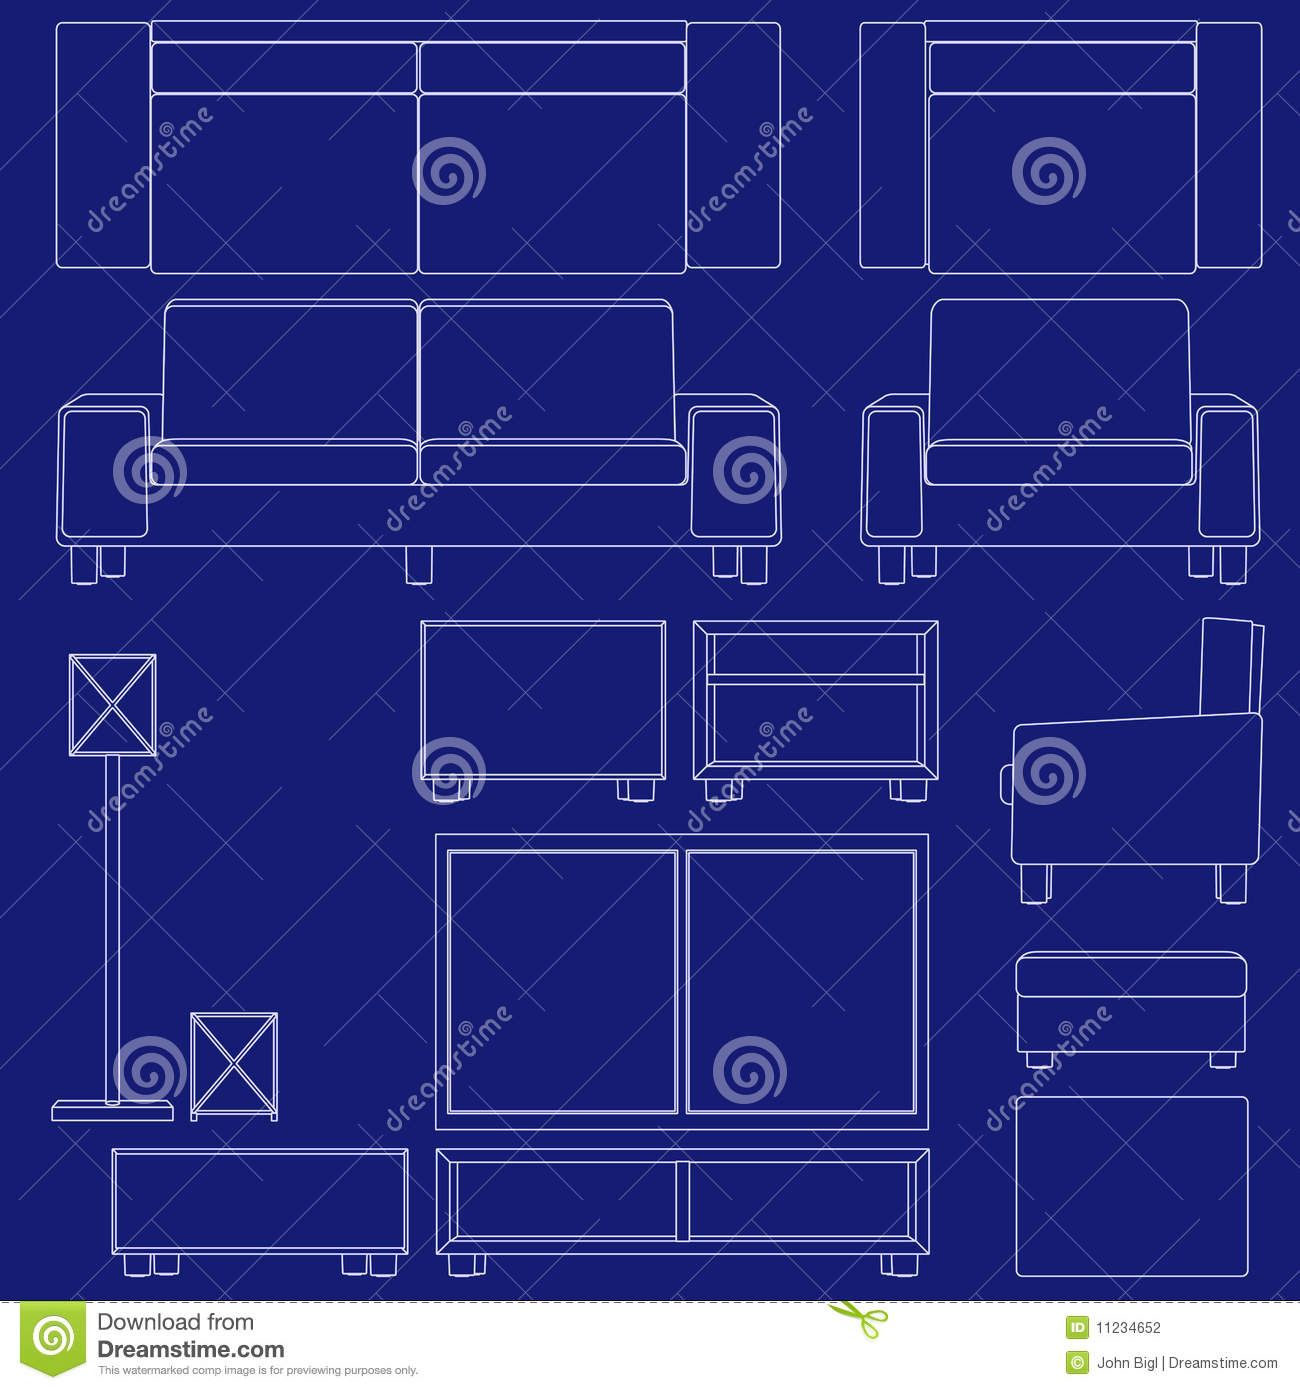 Blueprint living room furniture stock vector illustration of couch blueprint living room furniture malvernweather Image collections